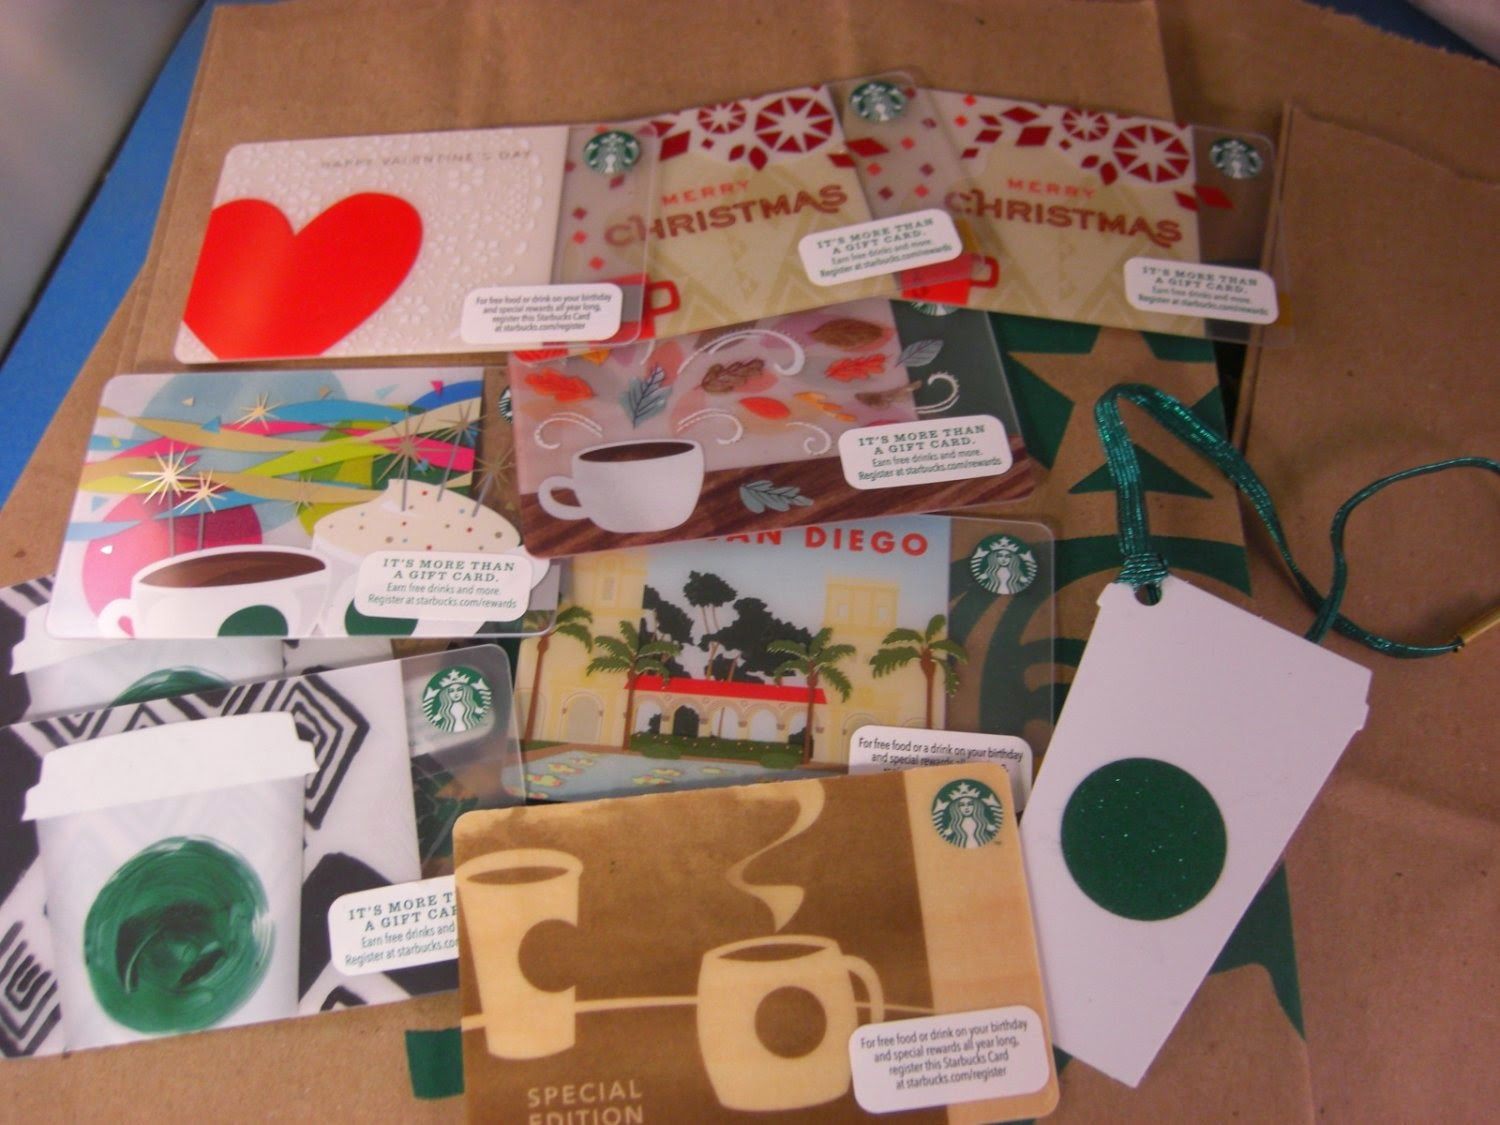 http://bargaincart.ecrater.com/p/21686517/starbucks-paper-reusable-gift-bag-with?keywords=starbucks